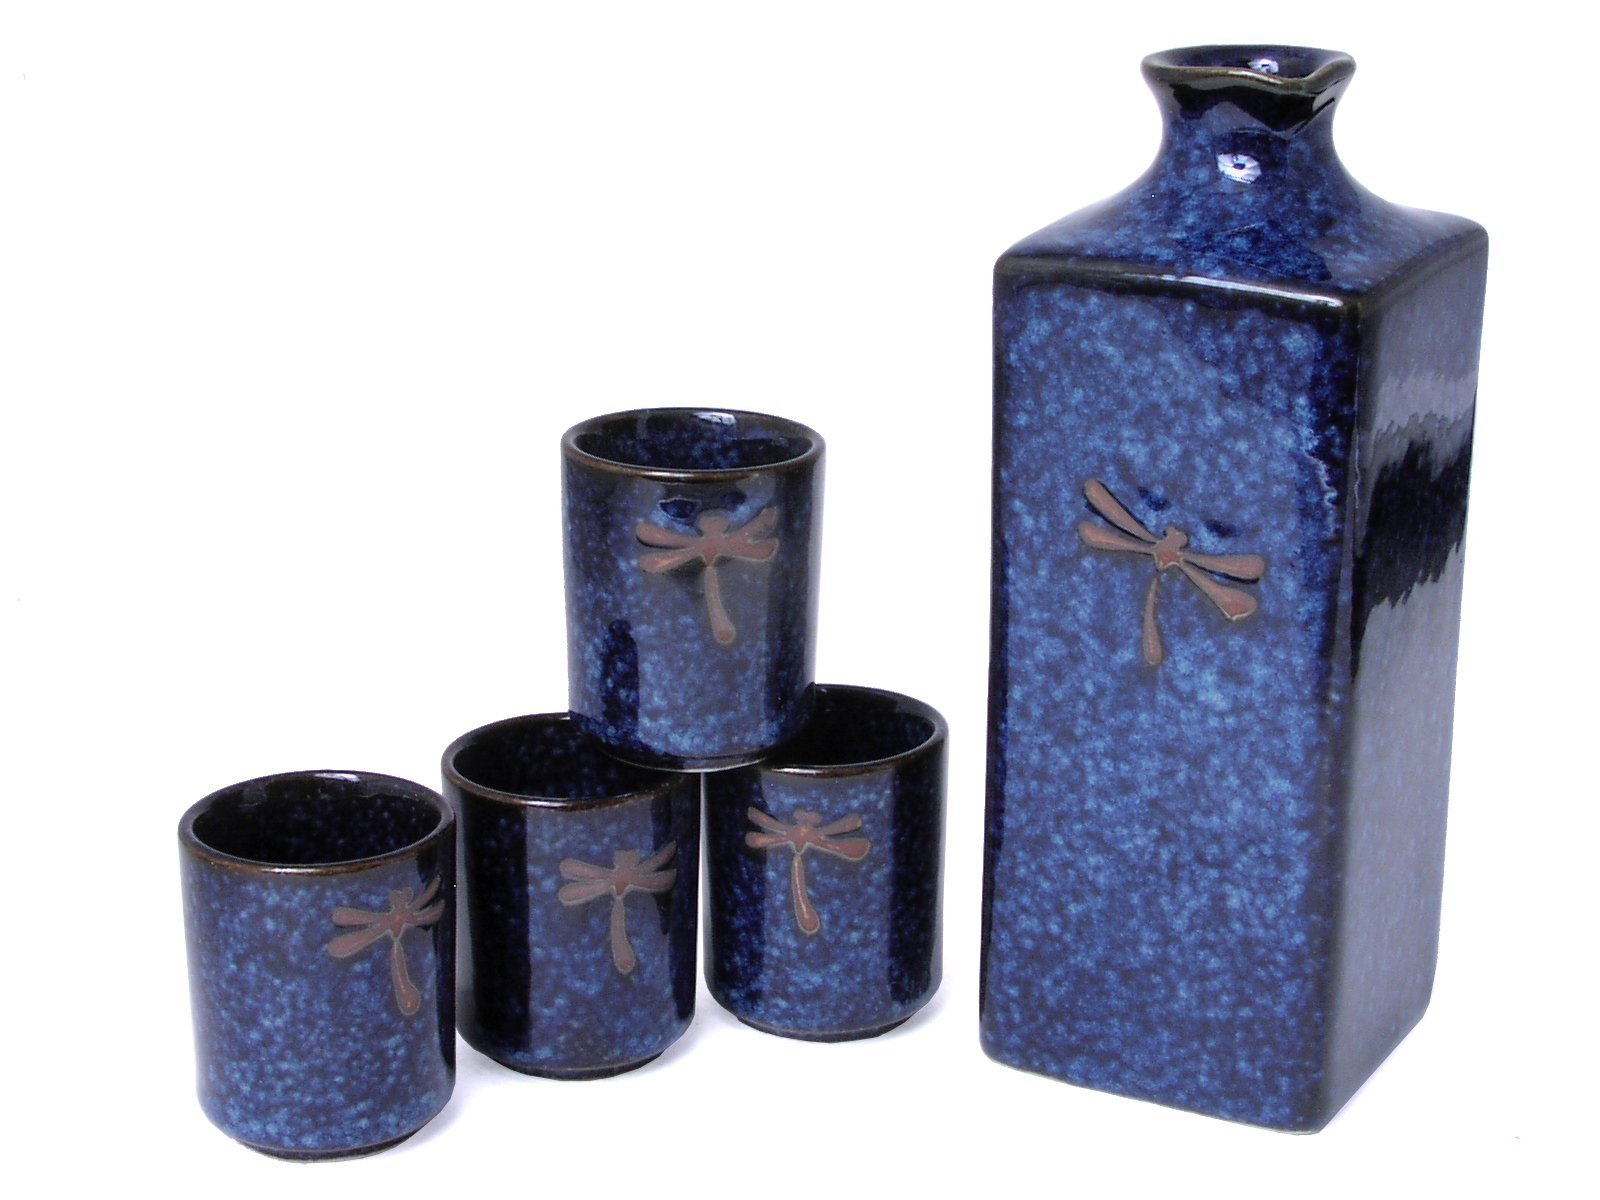 Happy Sales HSSS-DFS08, 5 pc Japanese sake set Blue Dragonfly by Happy Sales